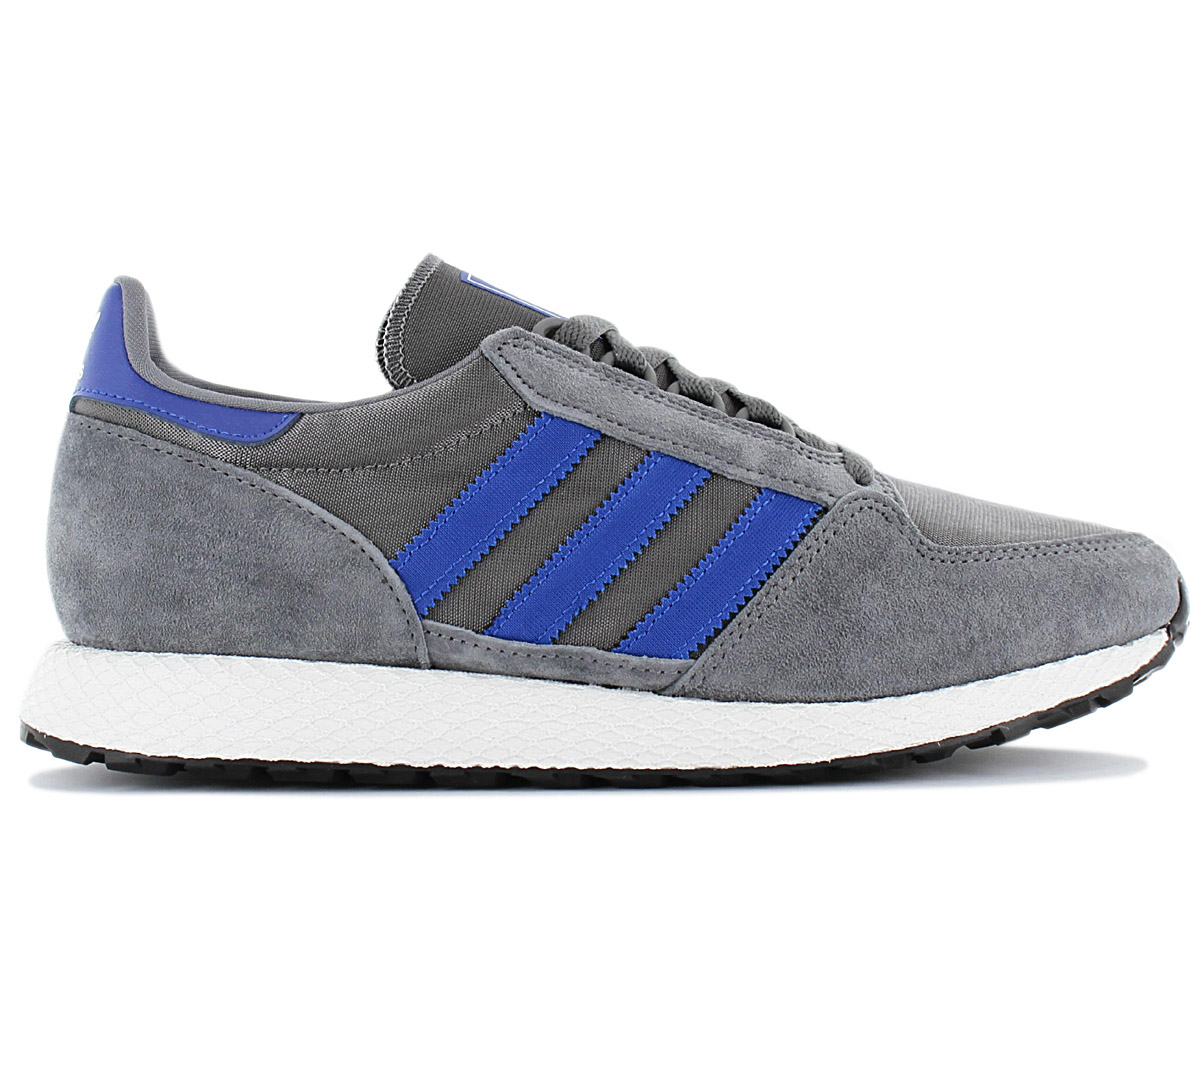 Details about Adidas Originals Forest Grove Sneaker B41548 Grey Shoes Sneakers Trainers